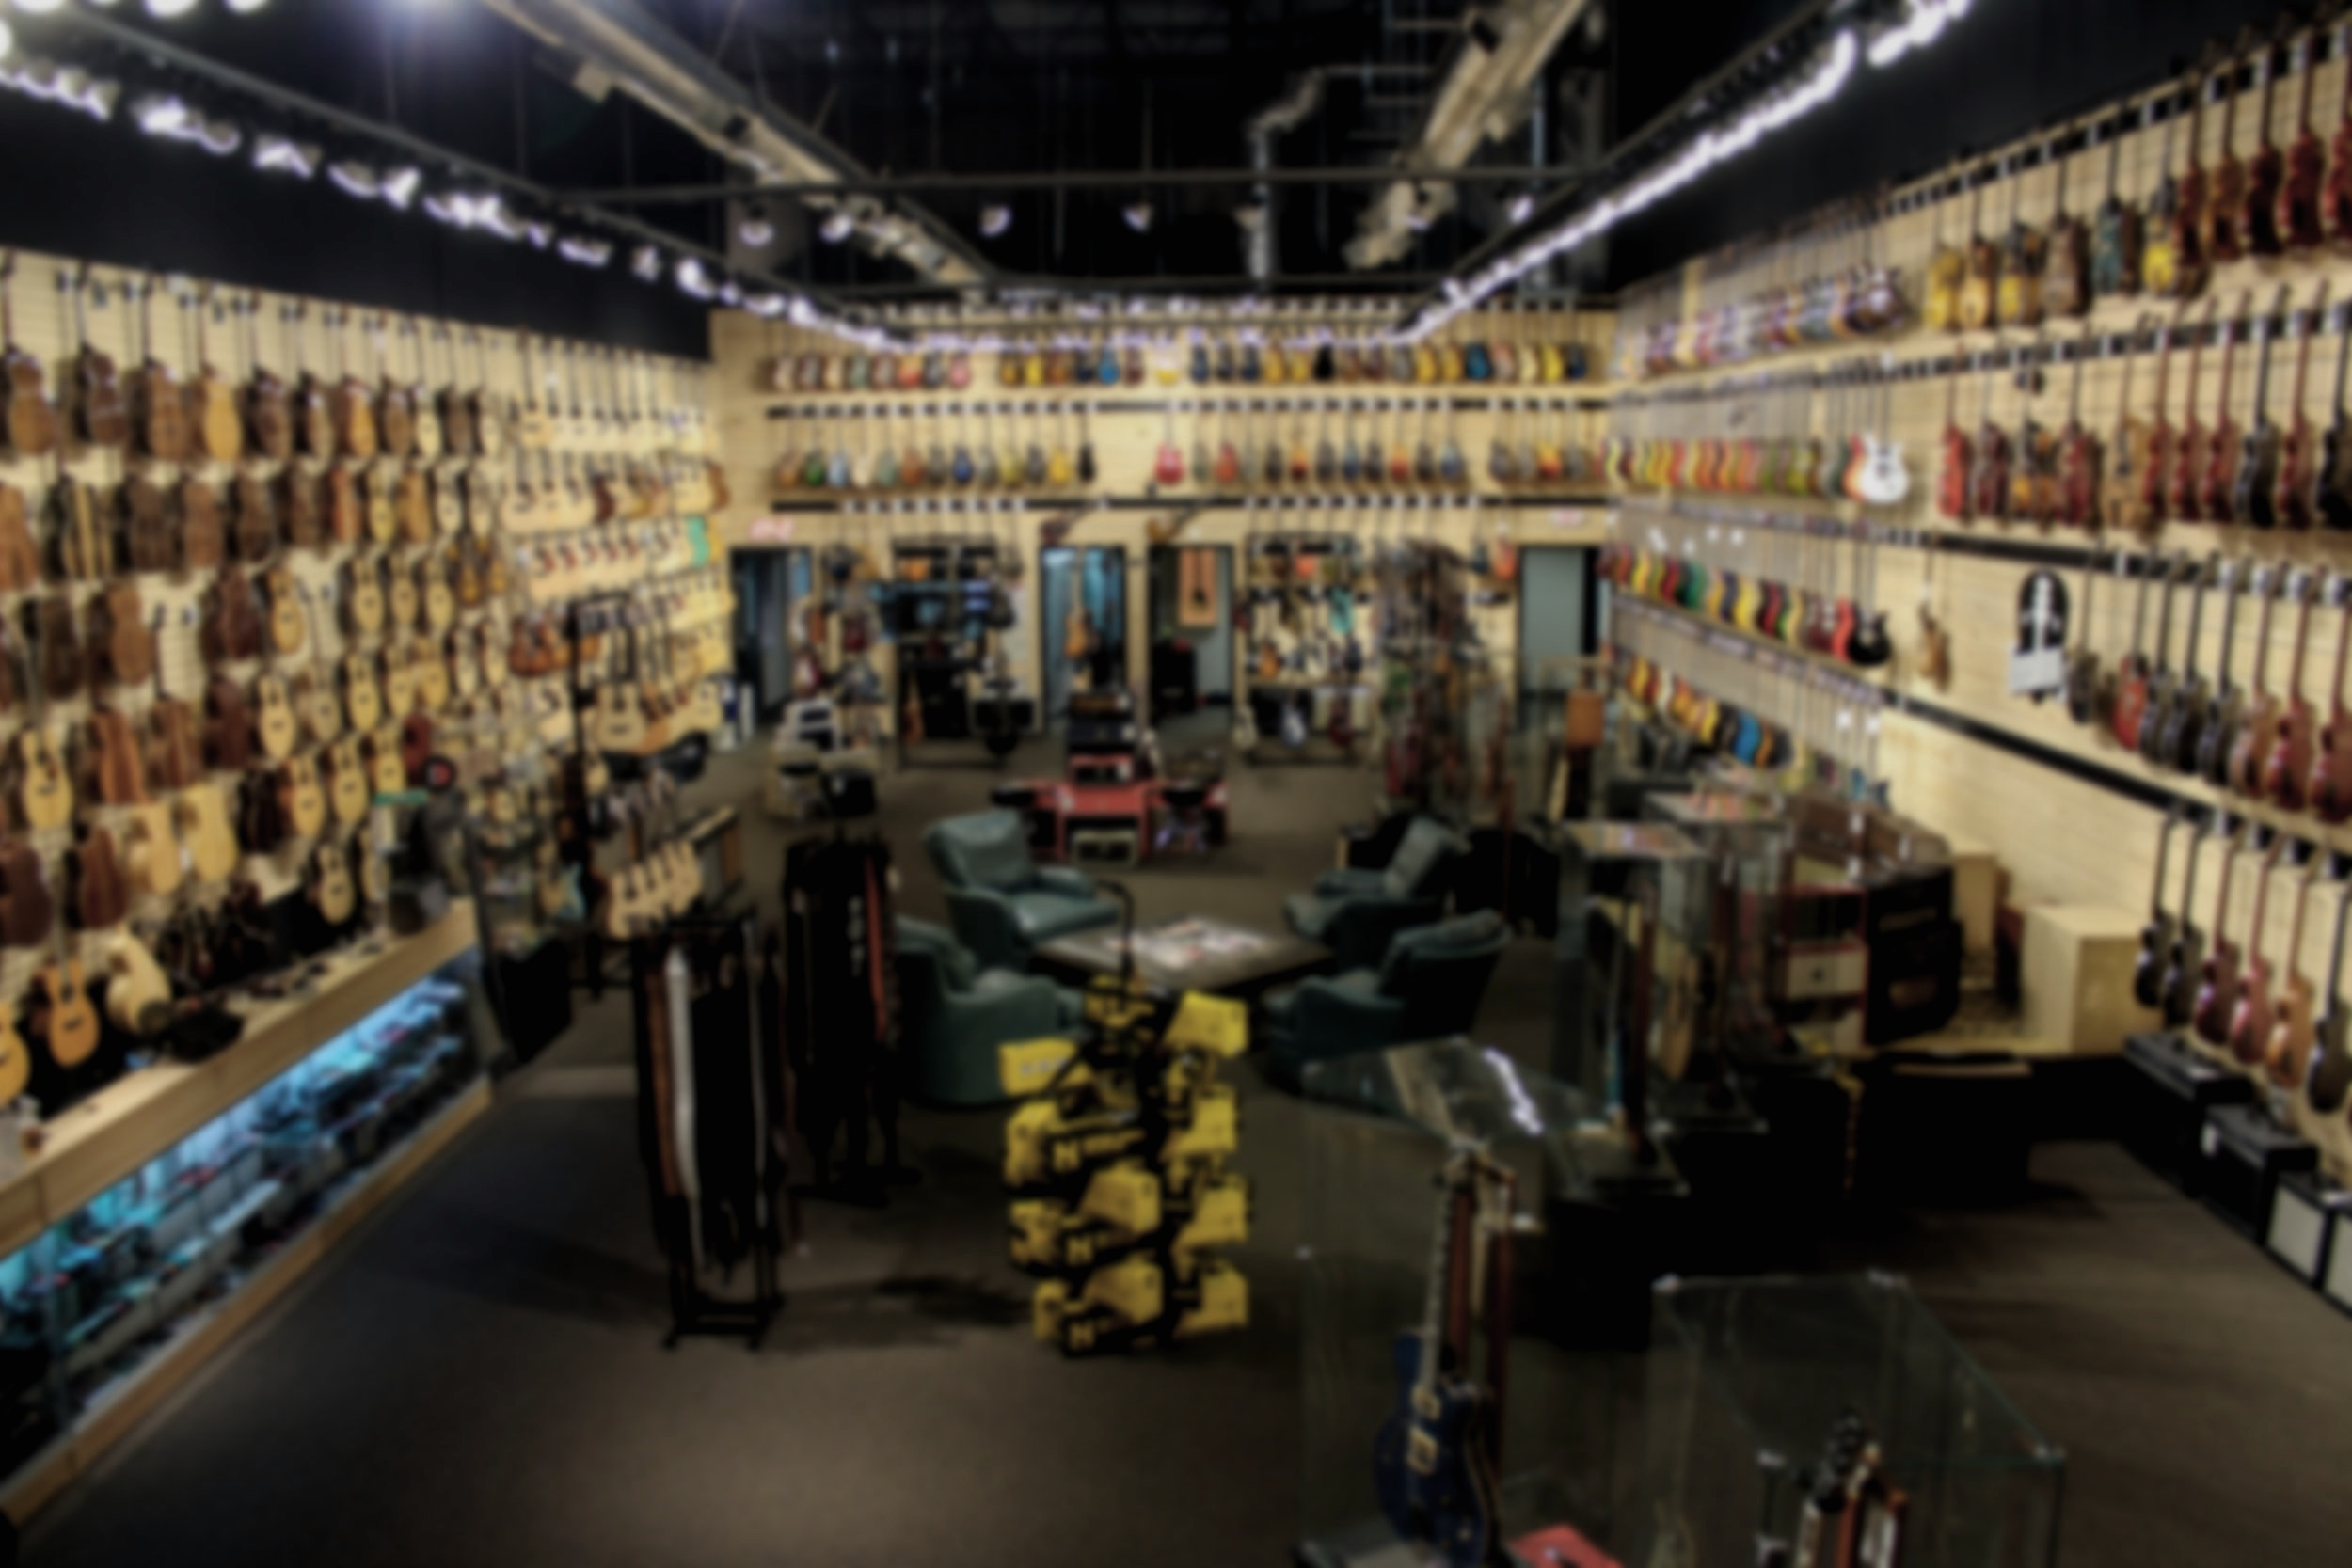 Righteous Guitars: Open Tuesday through Saturday 10am - 6pm